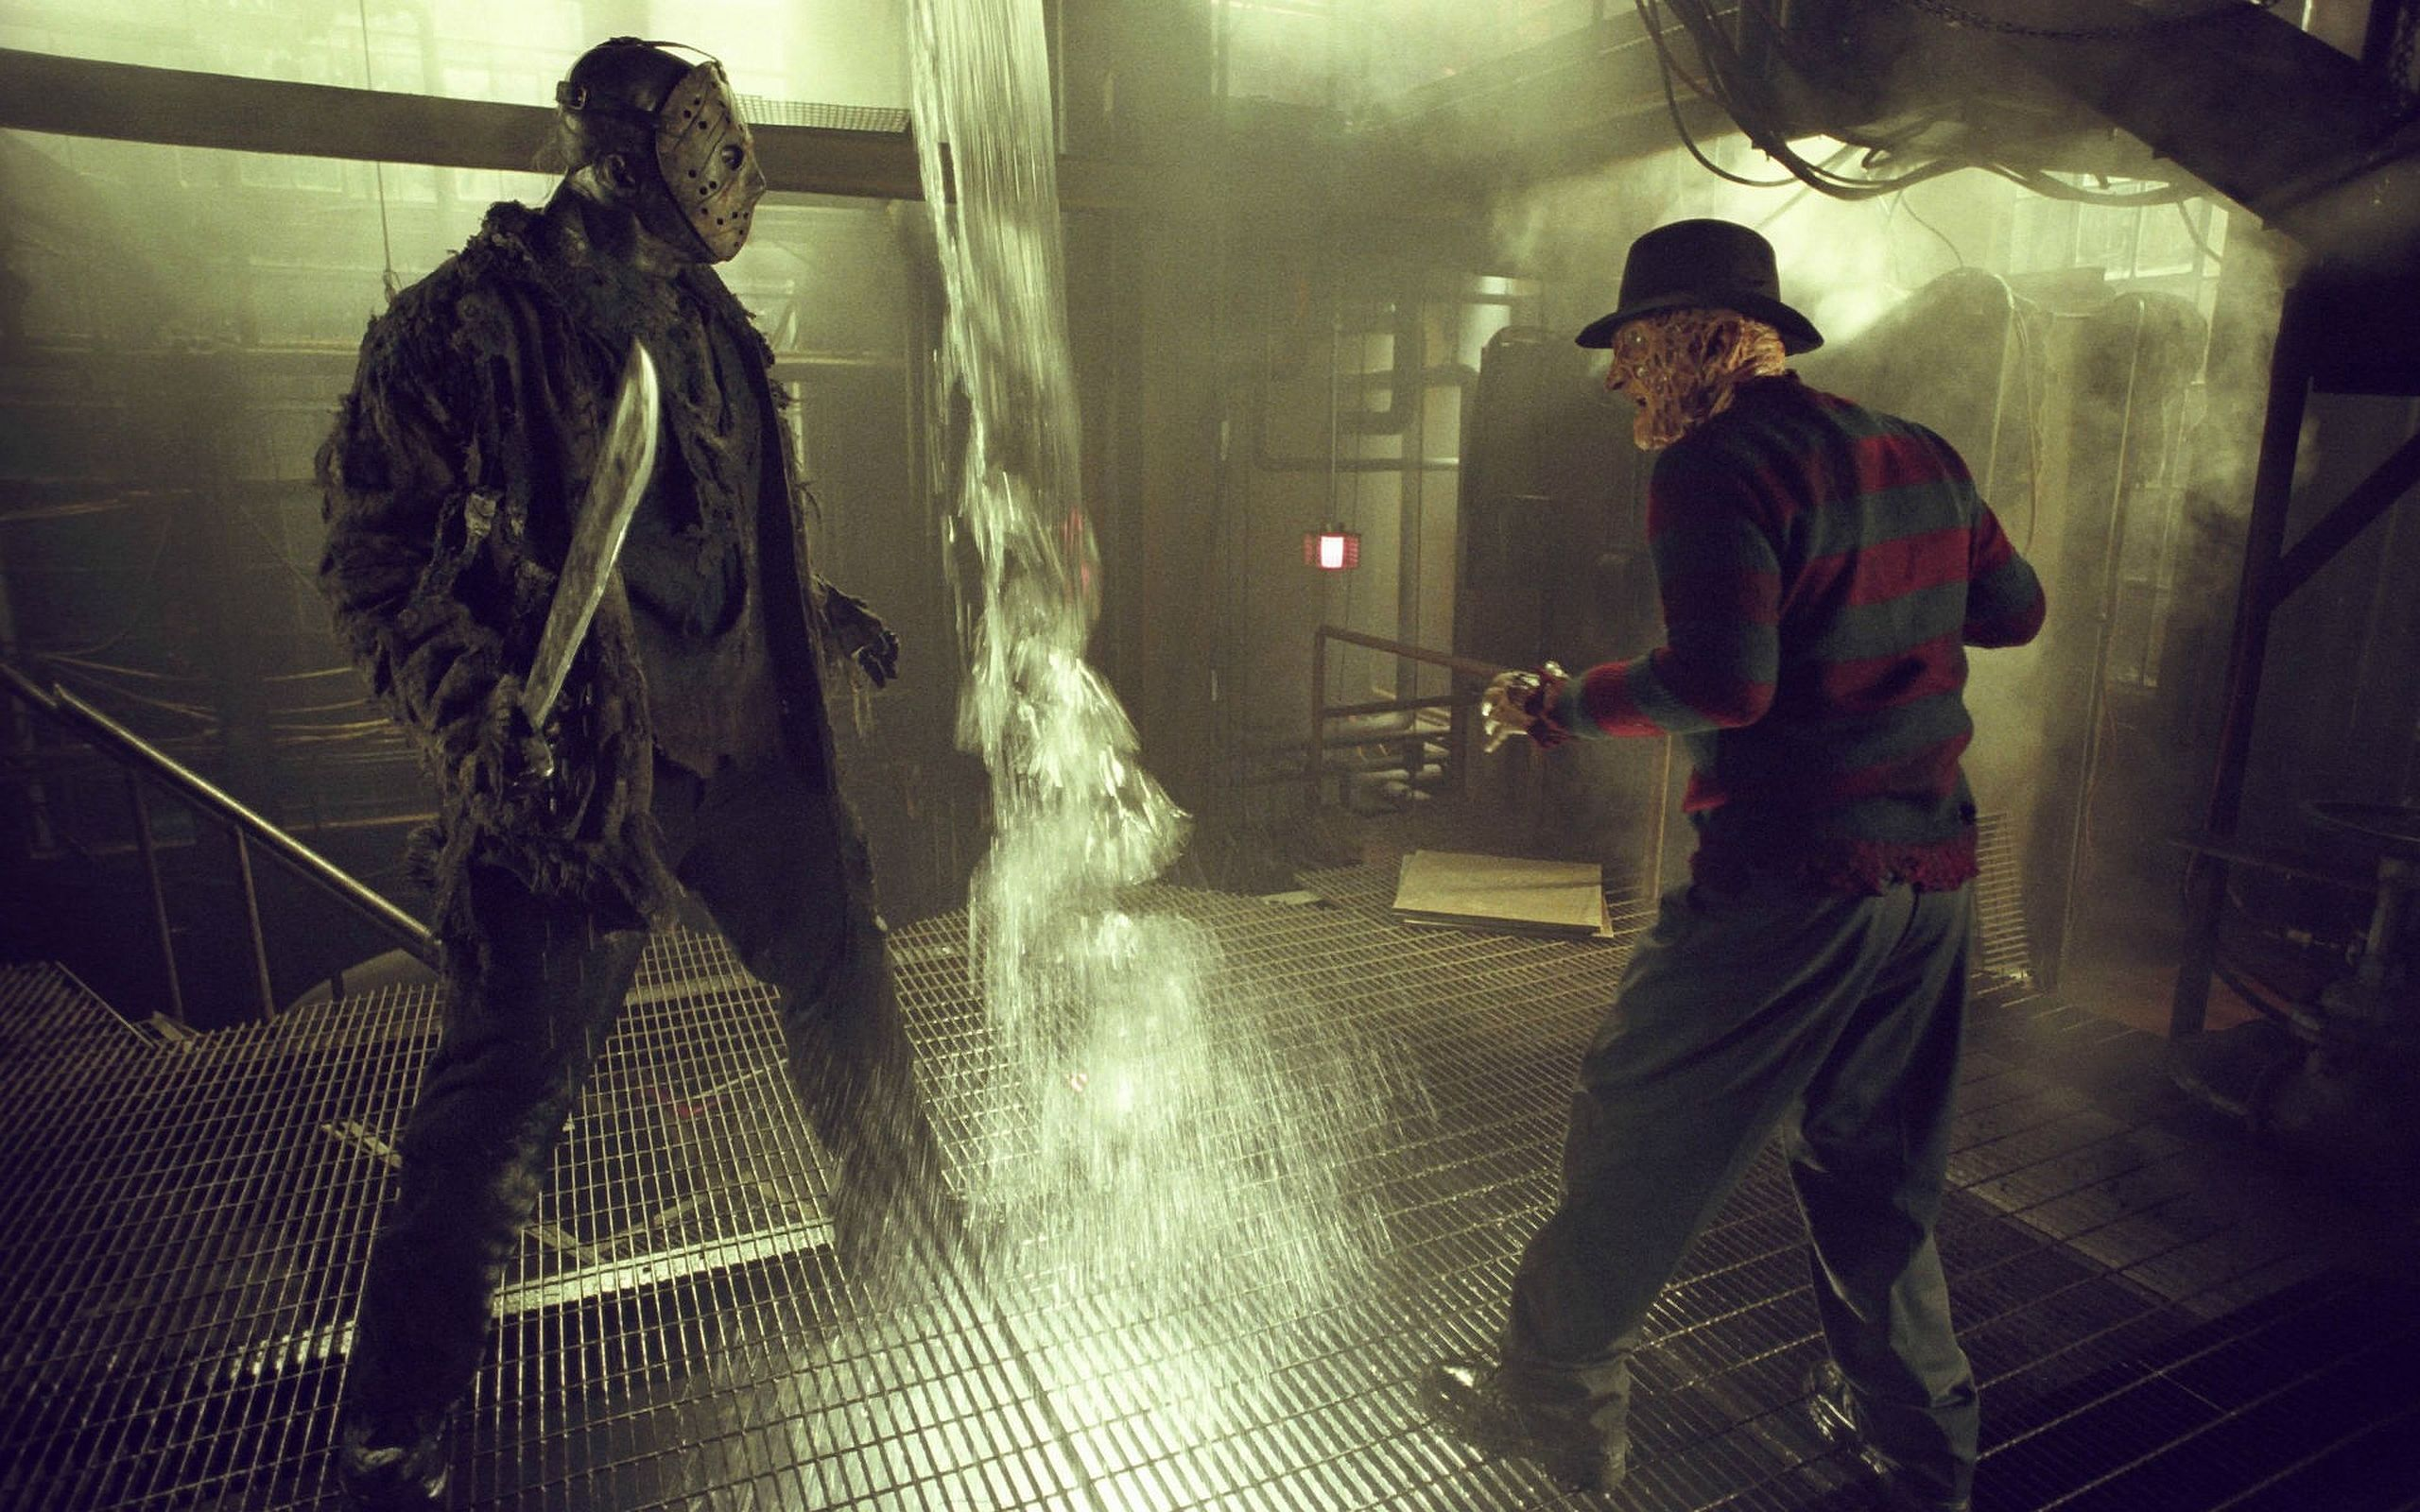 freddy vs jason movie 2003 krueger voorhees